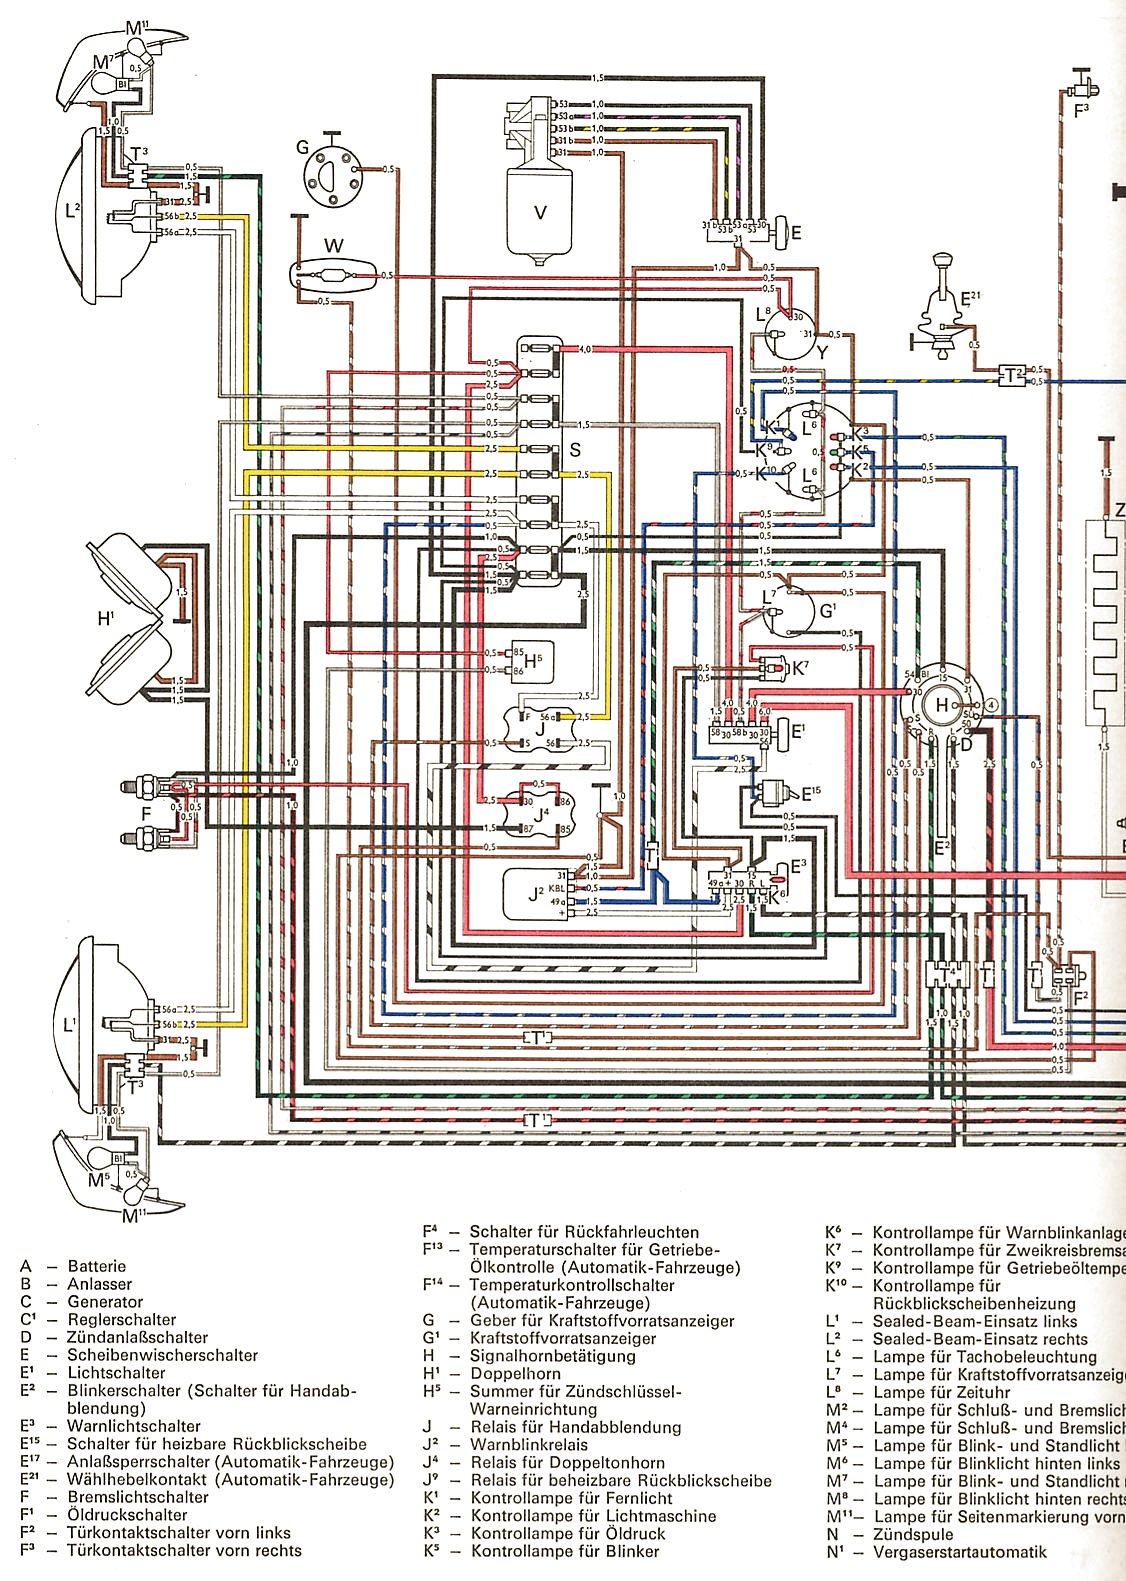 fiat x19 1300 wiring diagram fiat discover your wiring diagram brakelight problems shoptalkforums